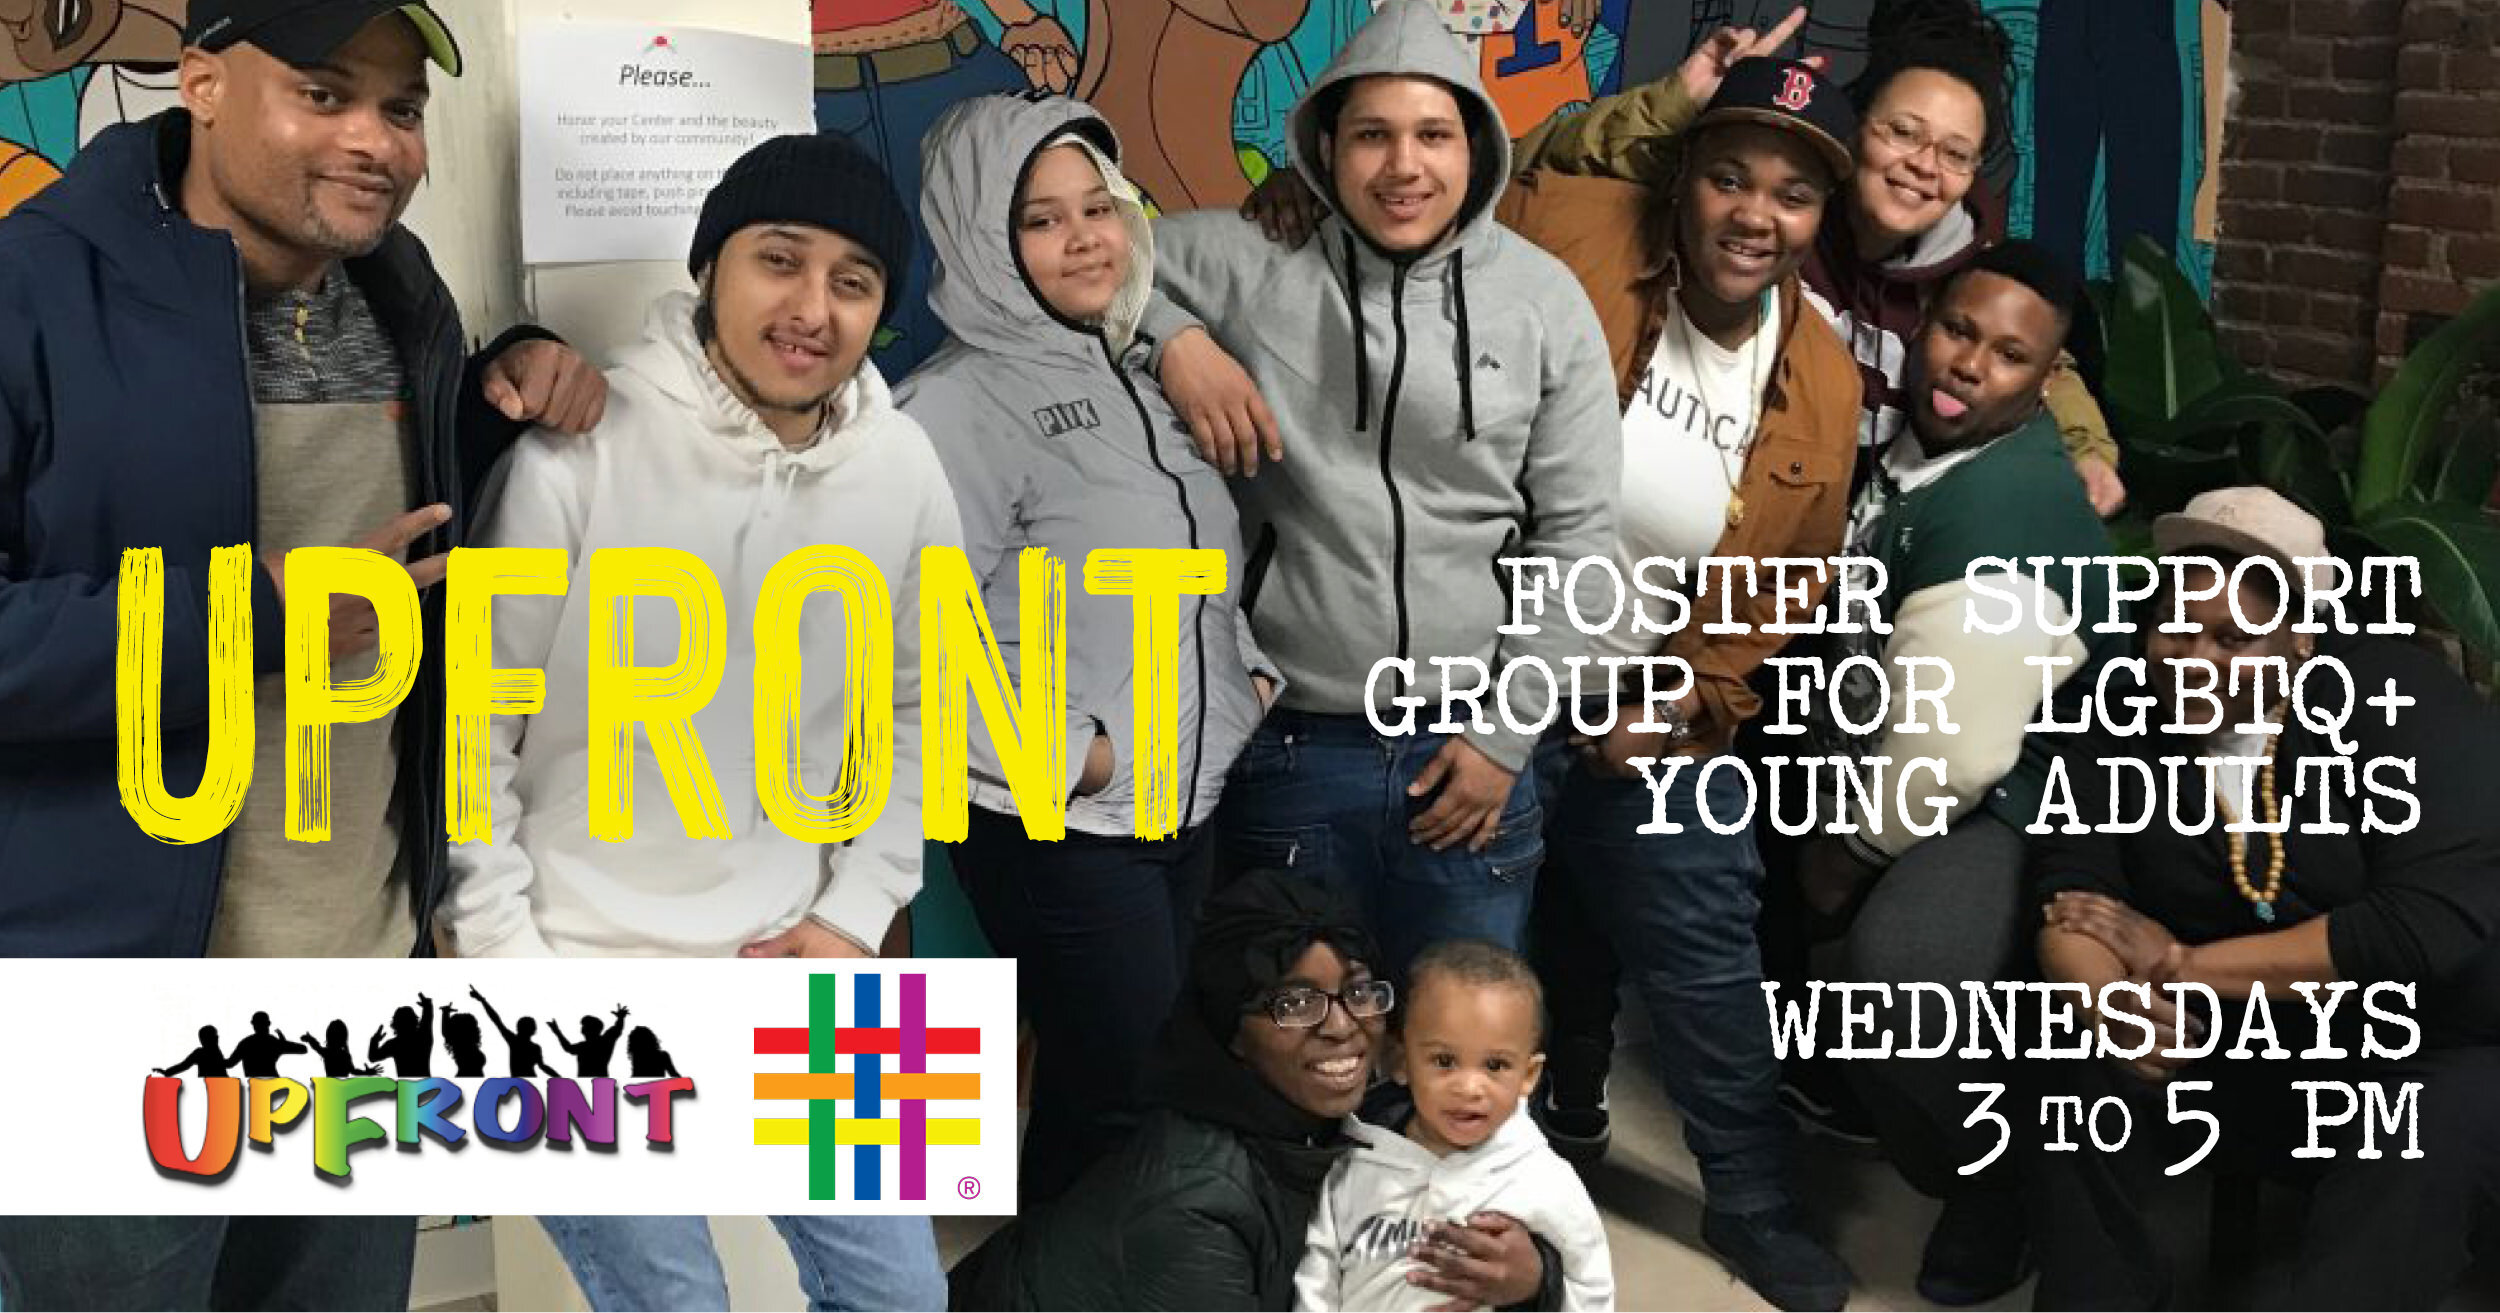 Upfront: Foster Support Group for LGBTQ+ Young Adults